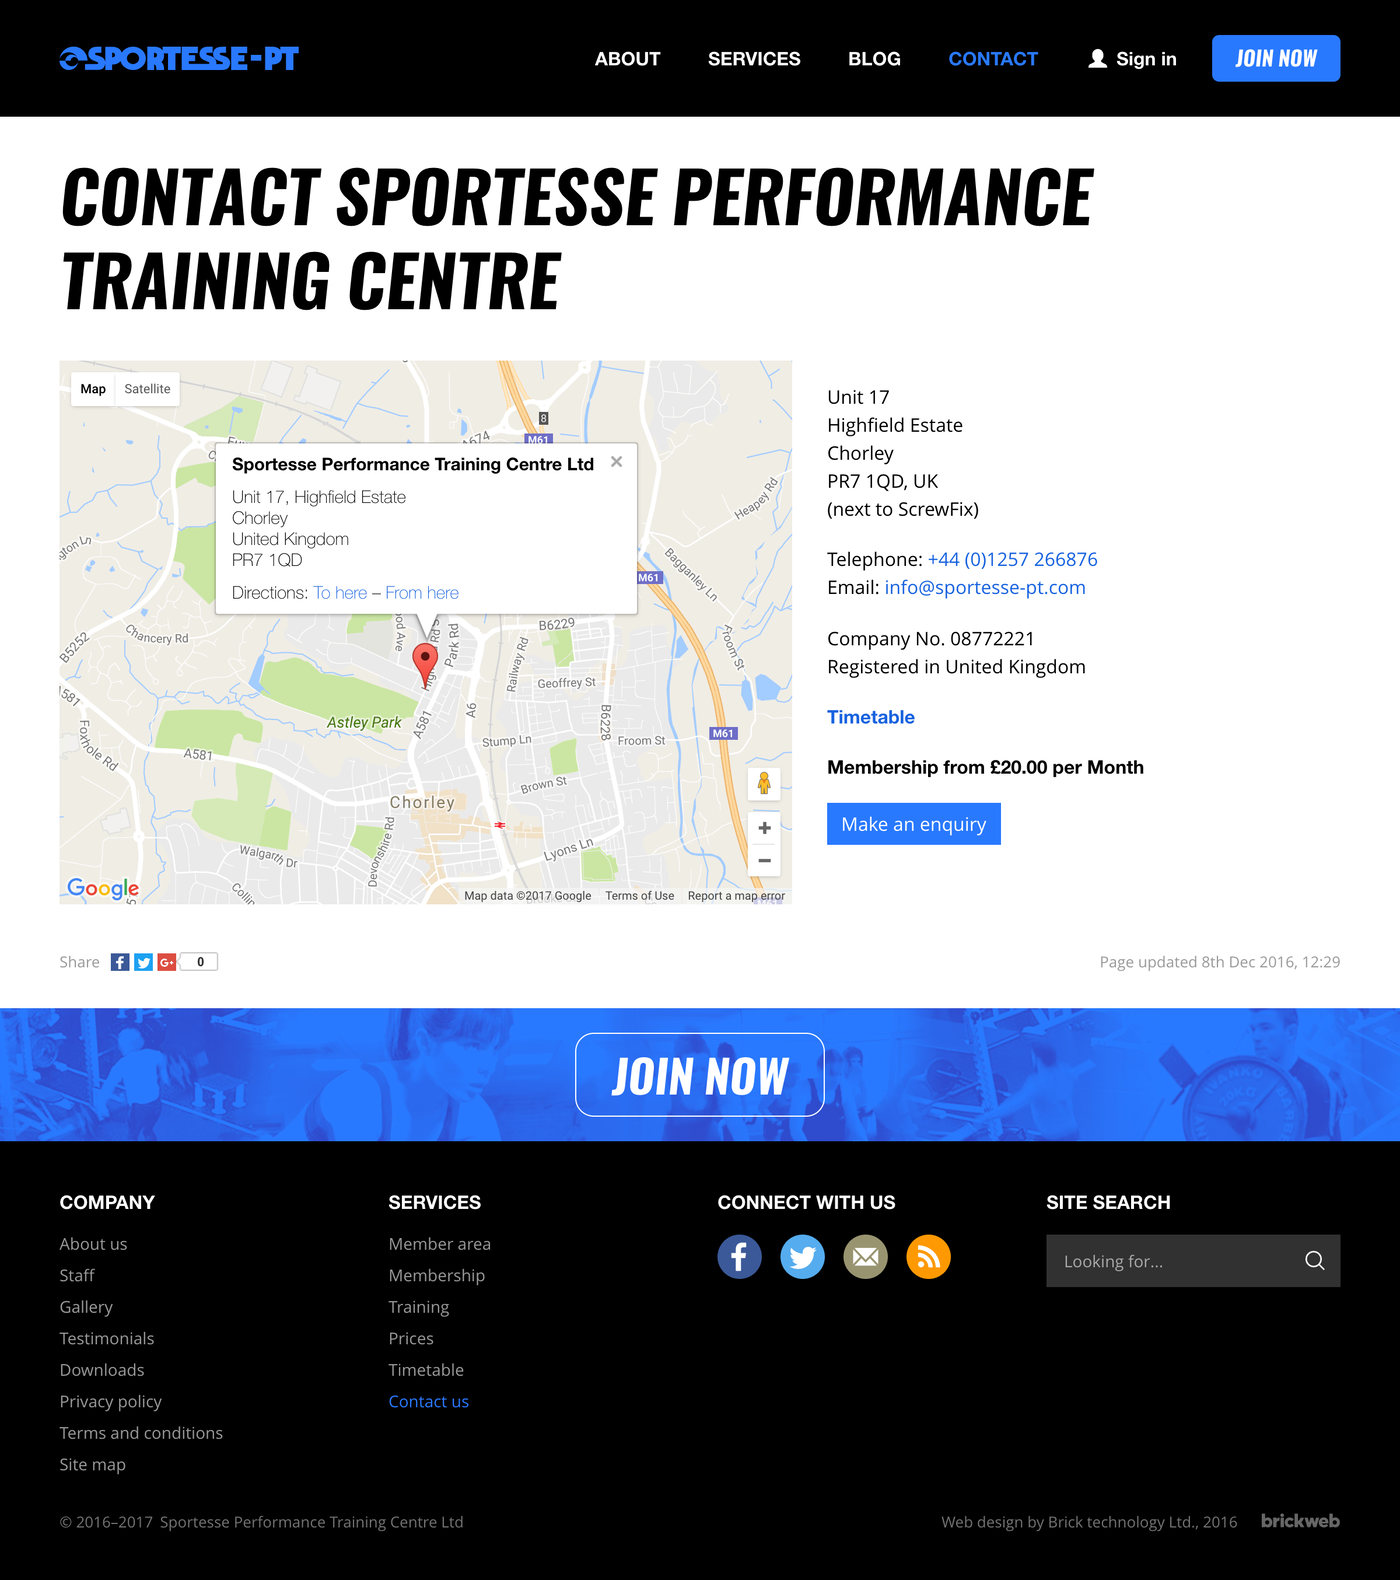 Sportesse Performance Training Center Contact